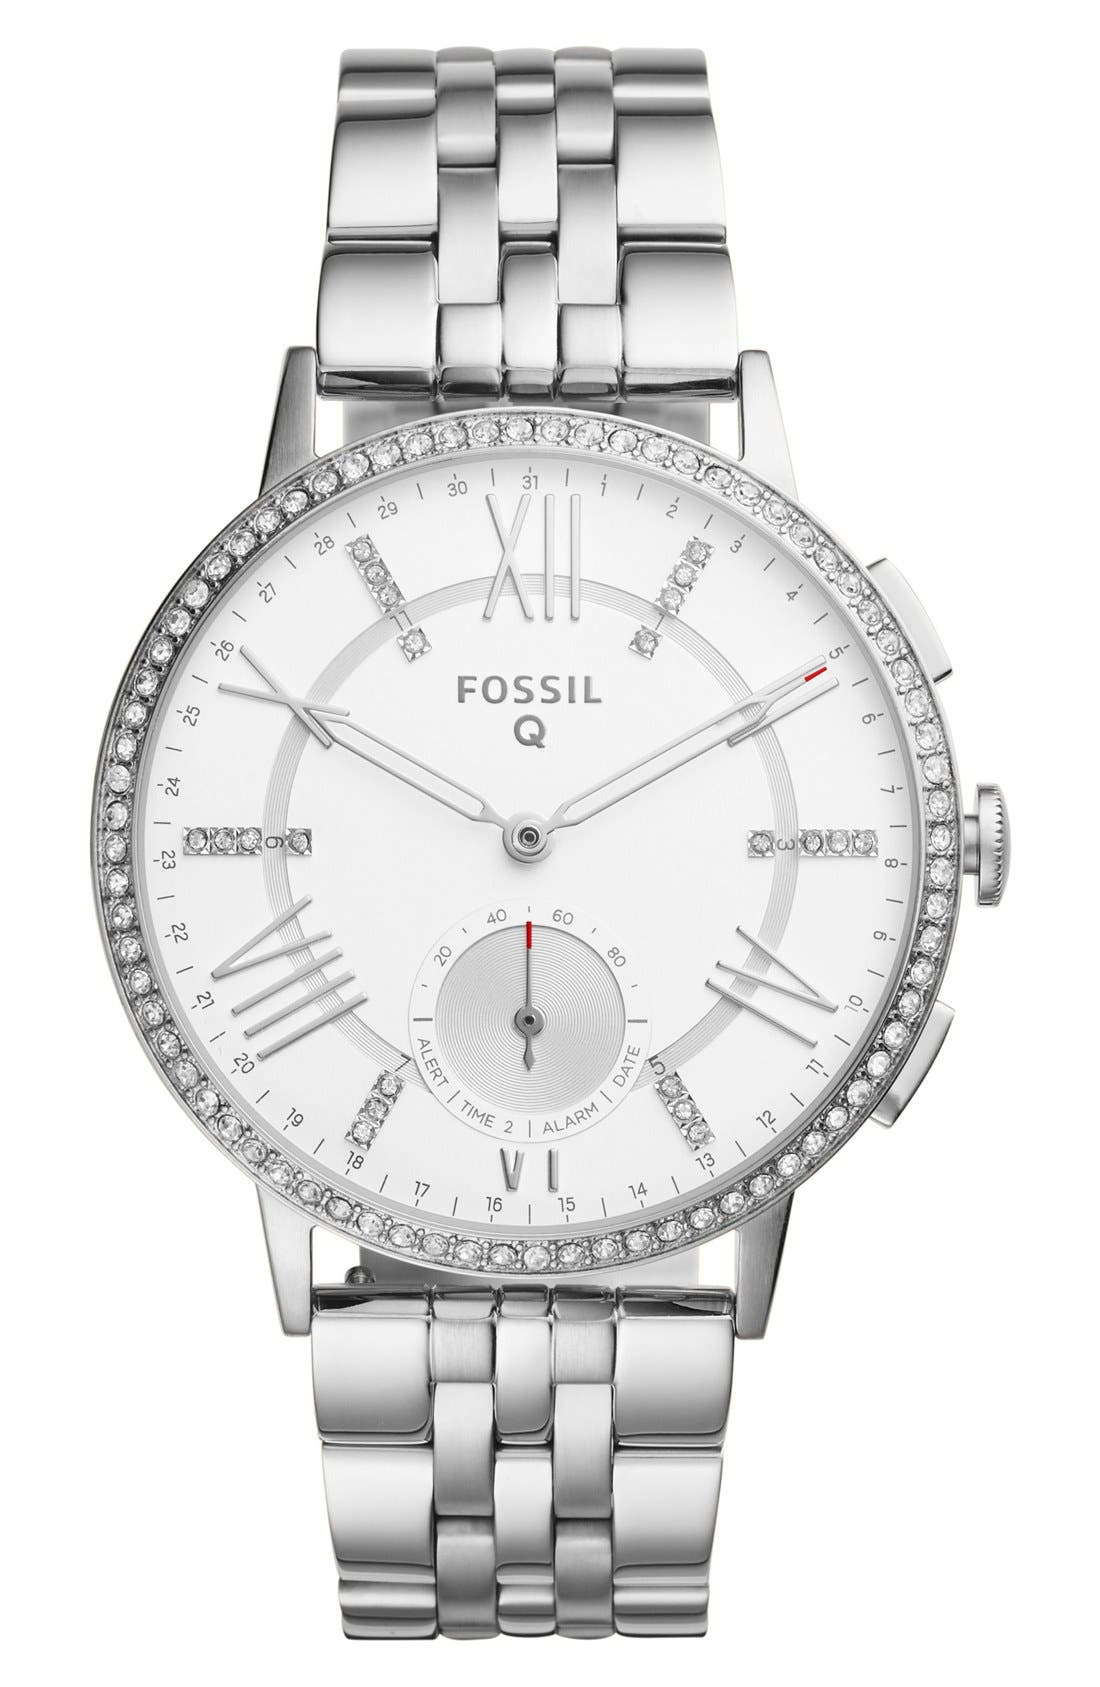 Fossil Q Gazer Hybrid Smart Bracelet Watch, 41mm